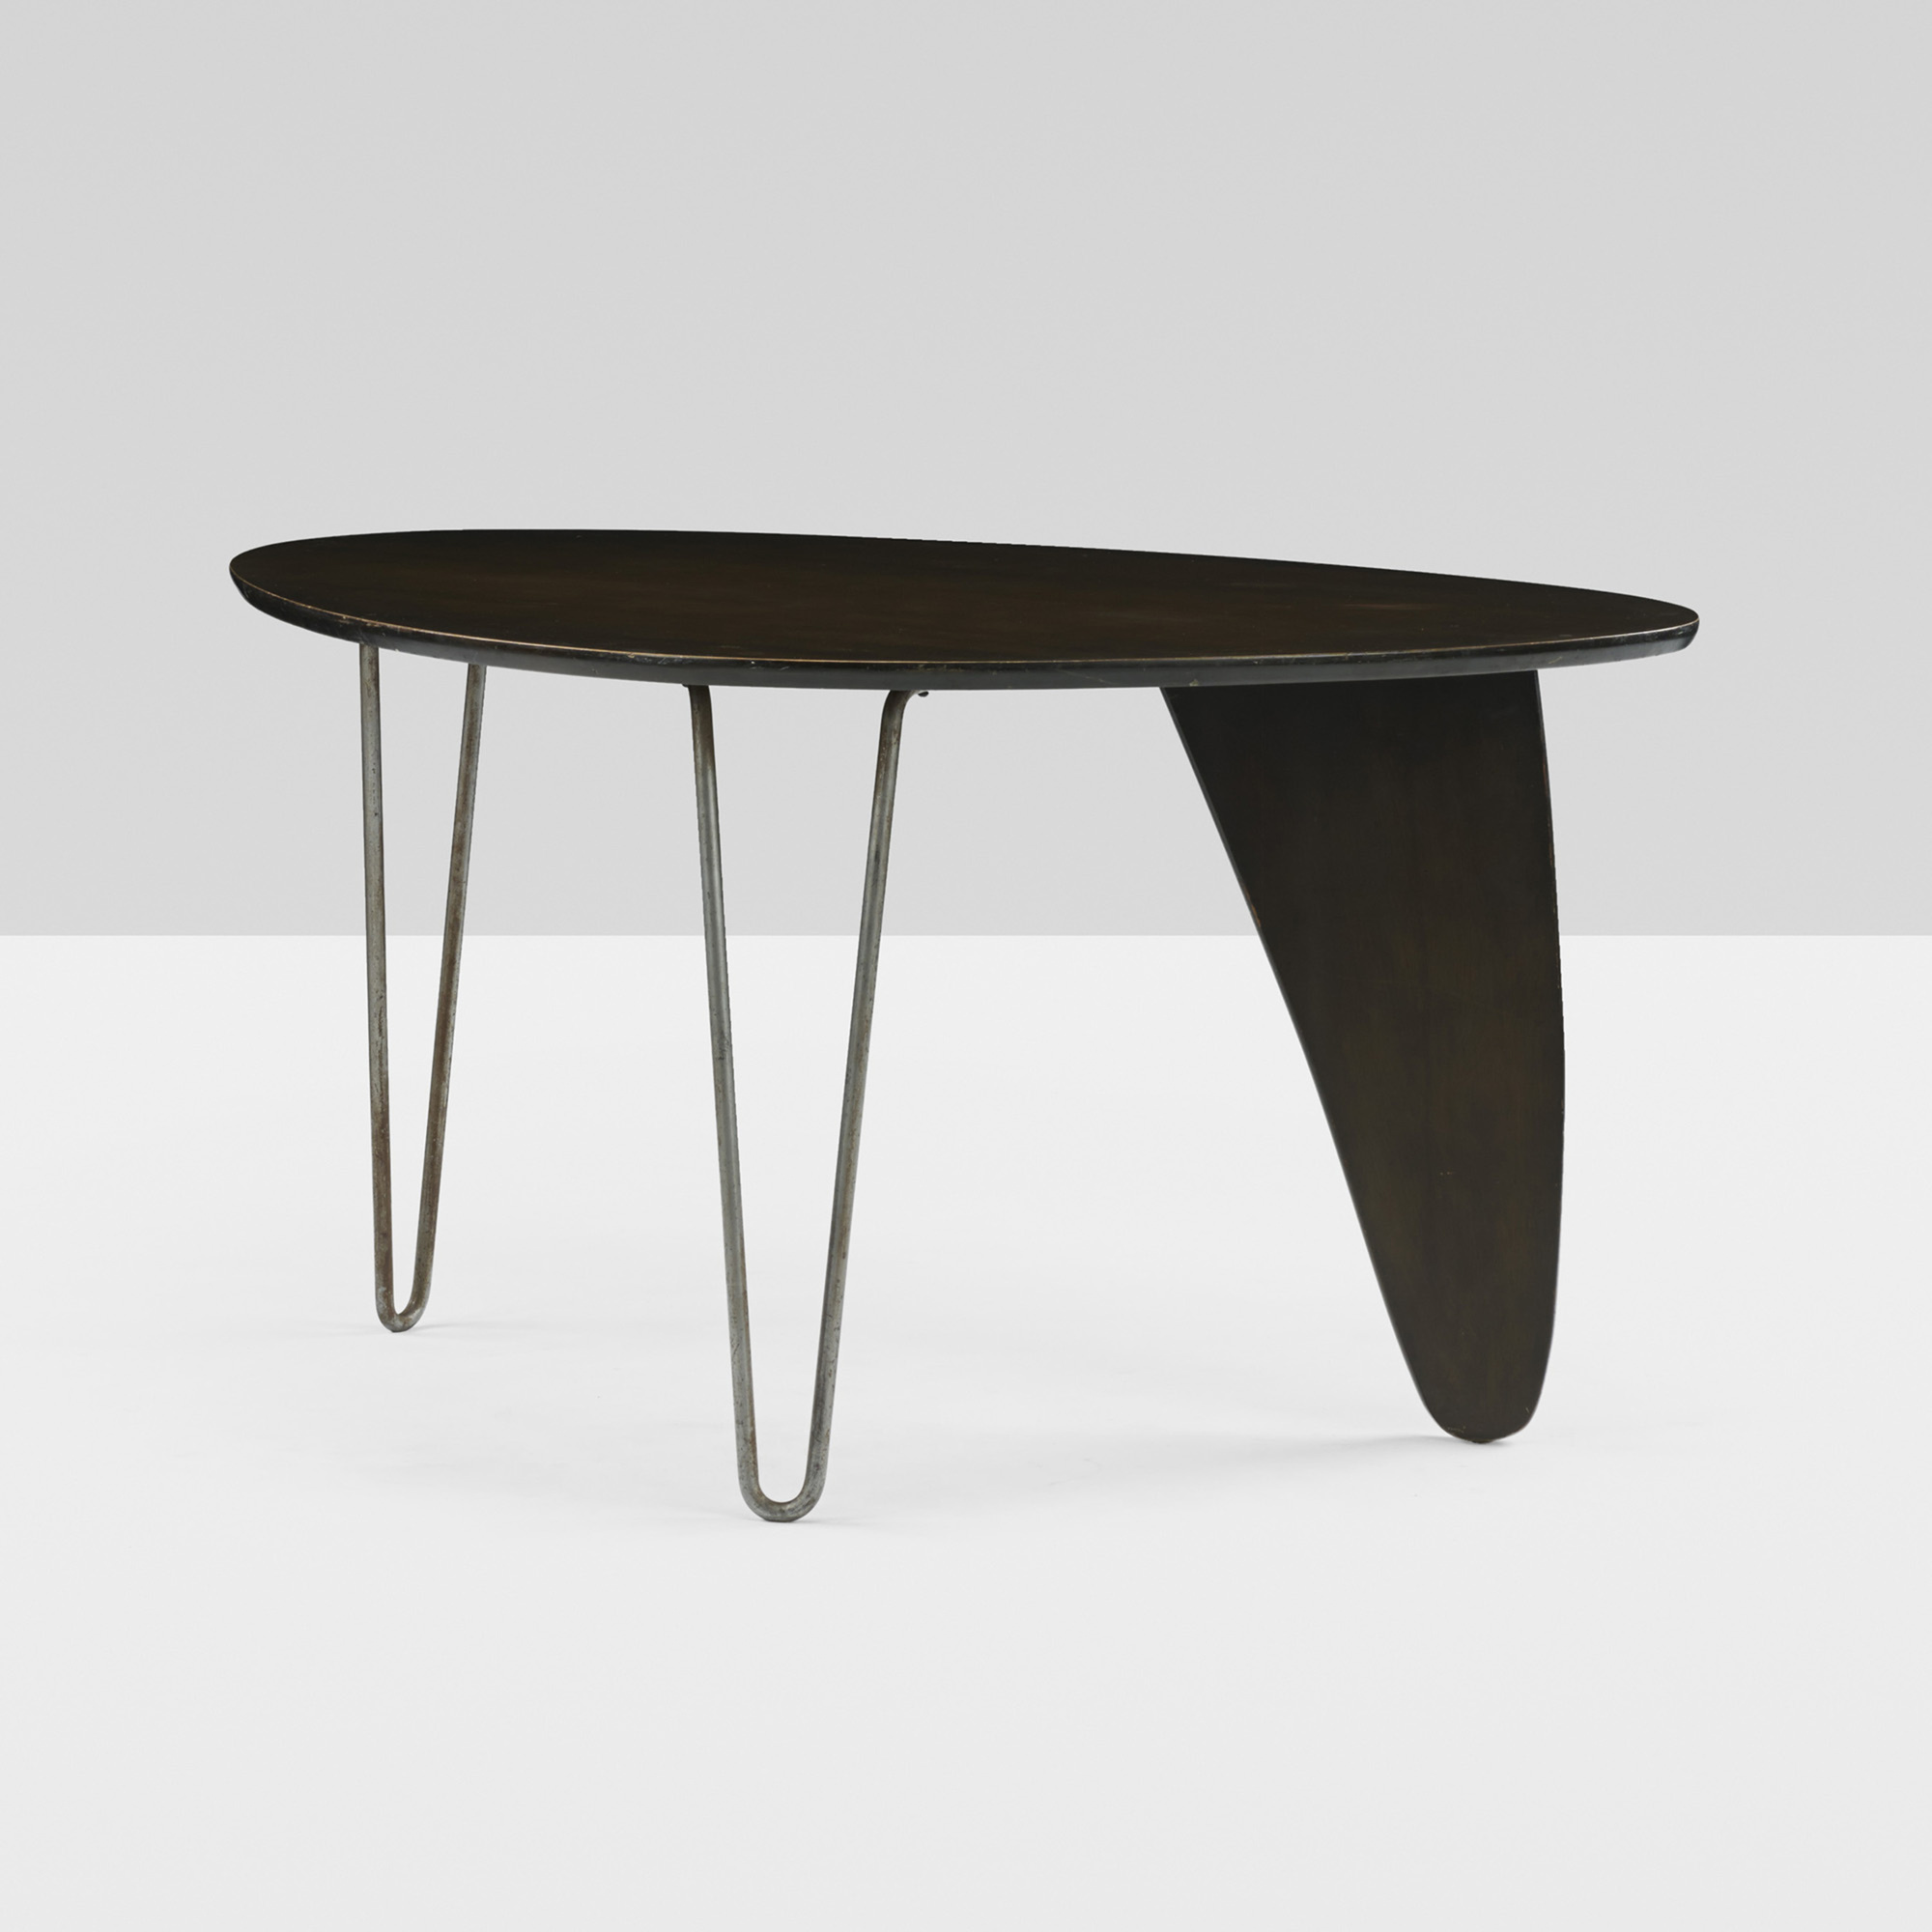 ISAMU NOGUCHI Rare And Important Rudder Dining Suite From The - Noguchi rudder table